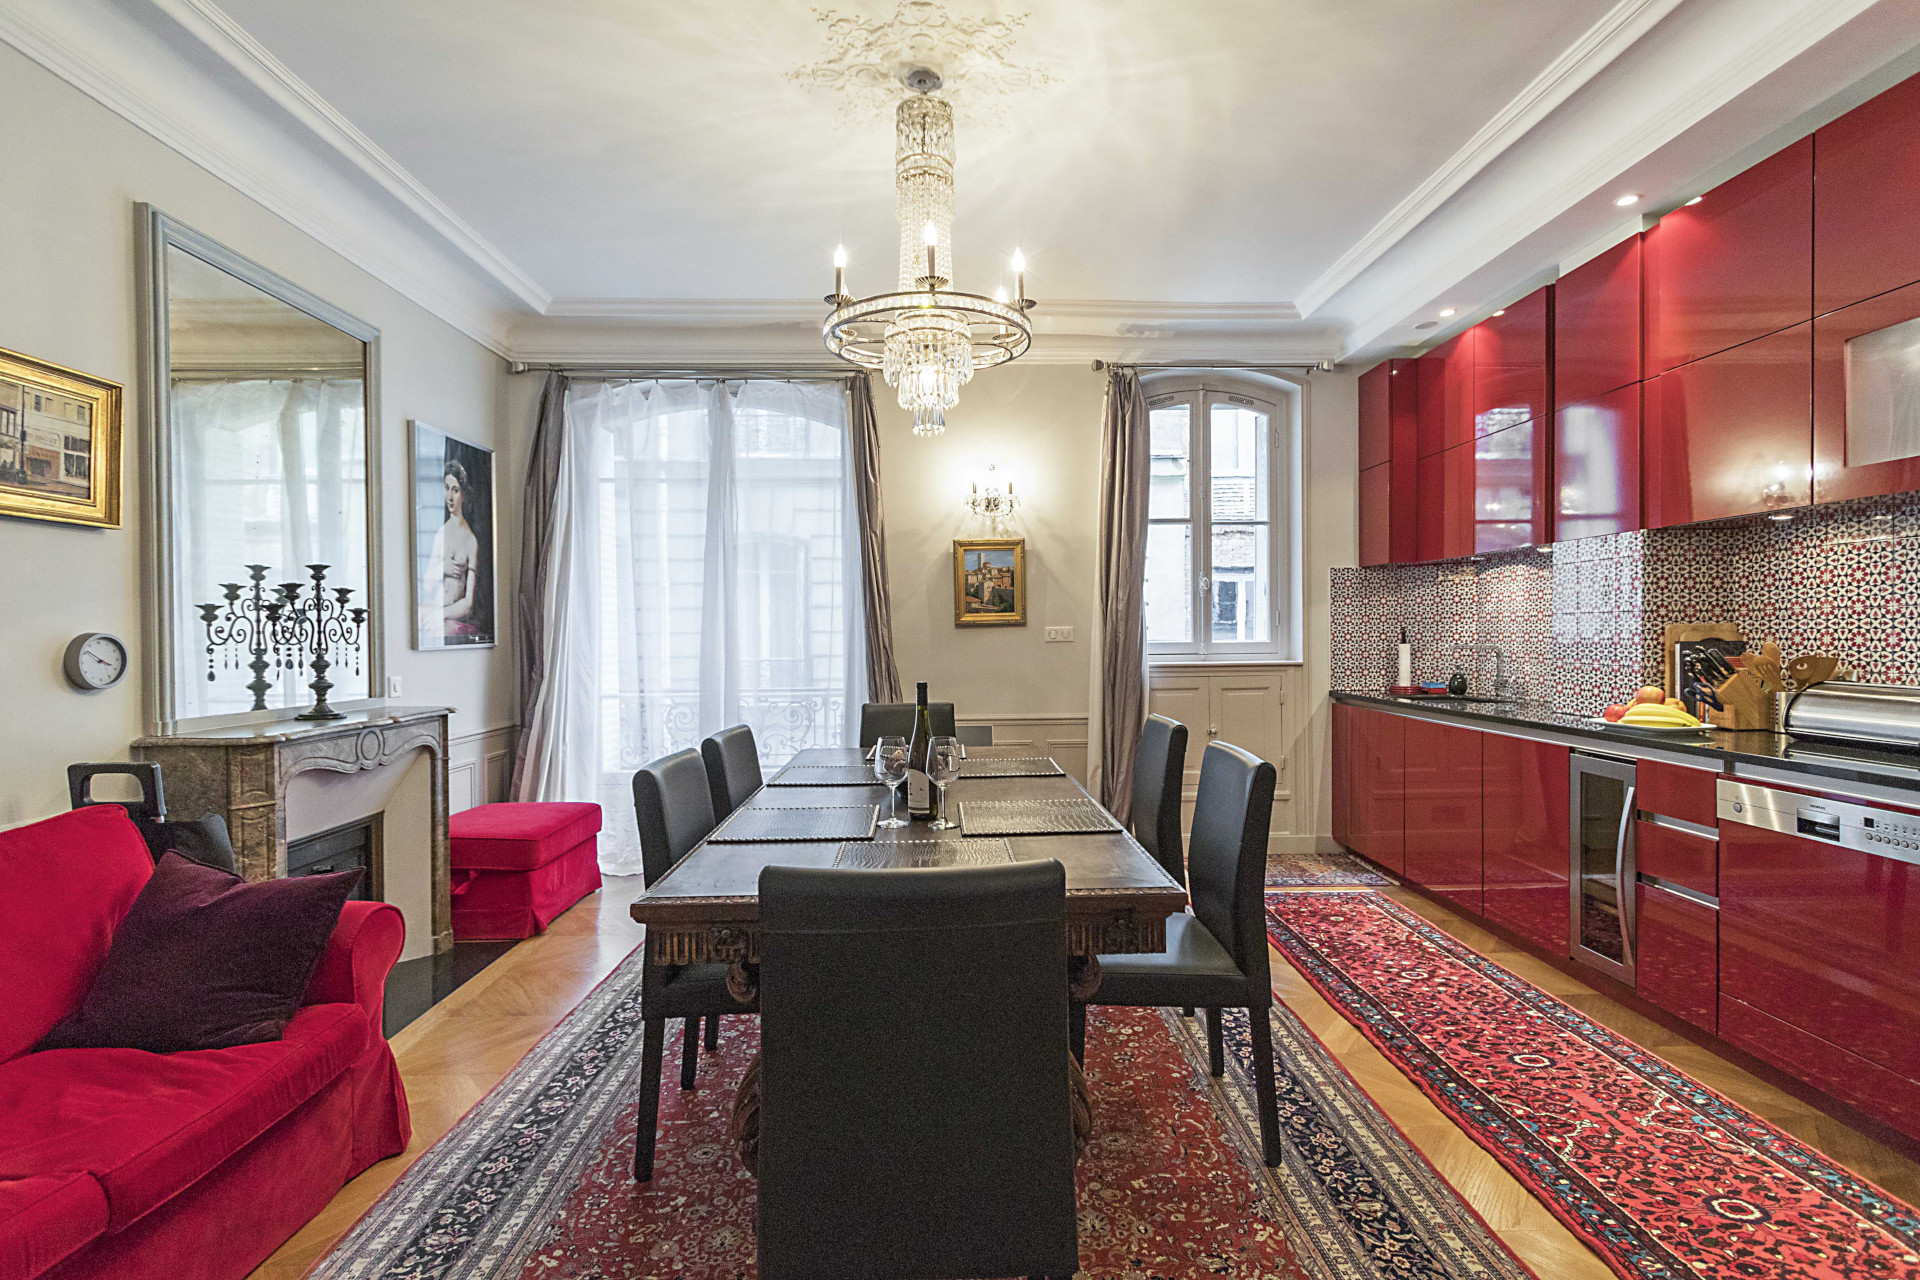 Enjoy your wonderful Parisian meals at this beautiful dining table in the Roannaise vacation rental by Paris Perfect